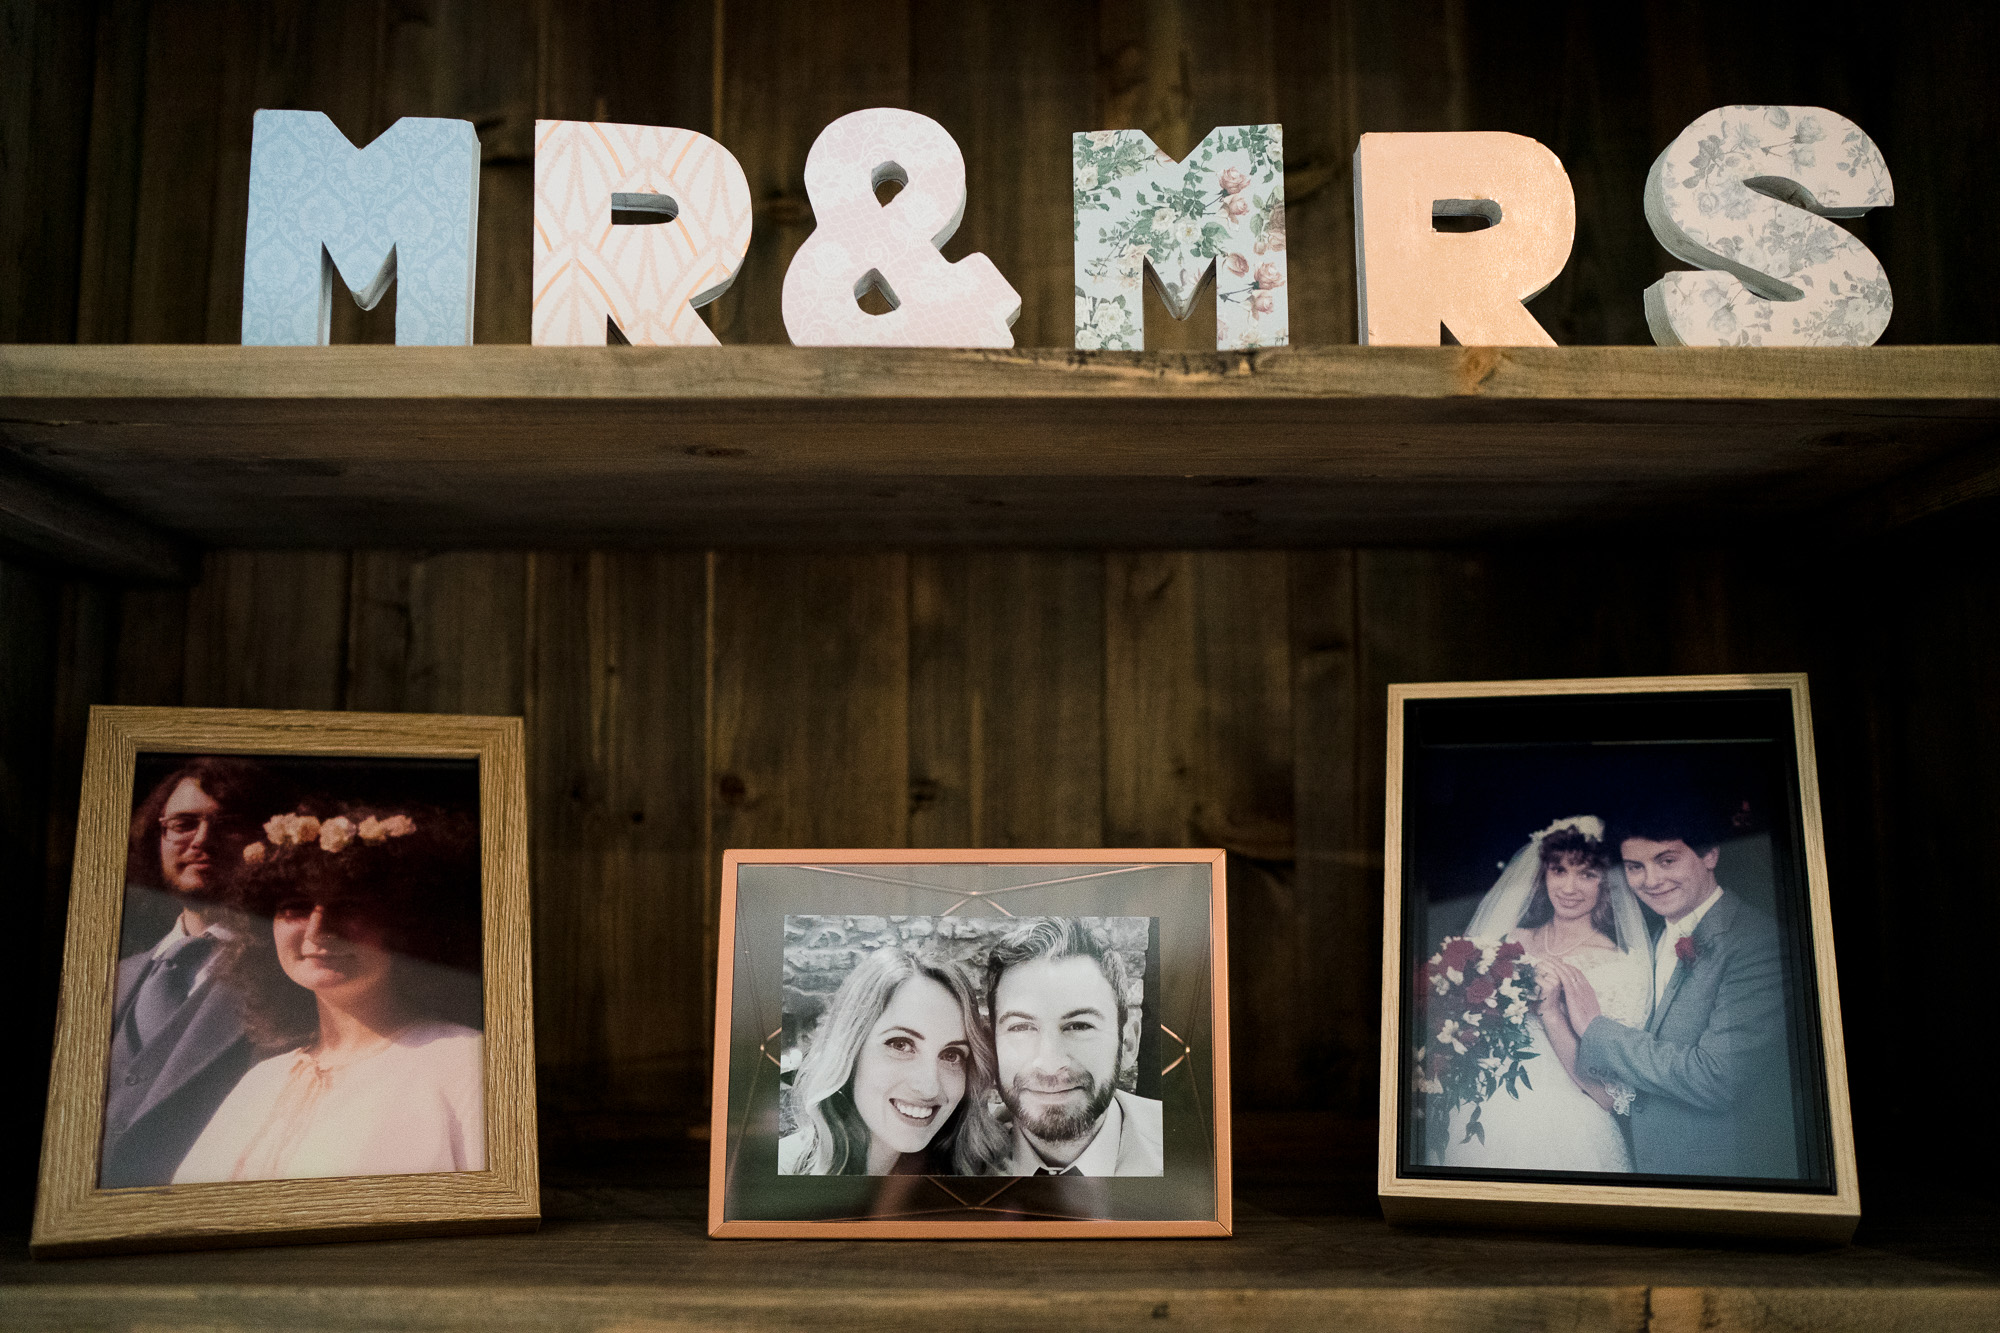 Tower Hill BArn Wedding Photographer based in north west england (2 of 35).jpg